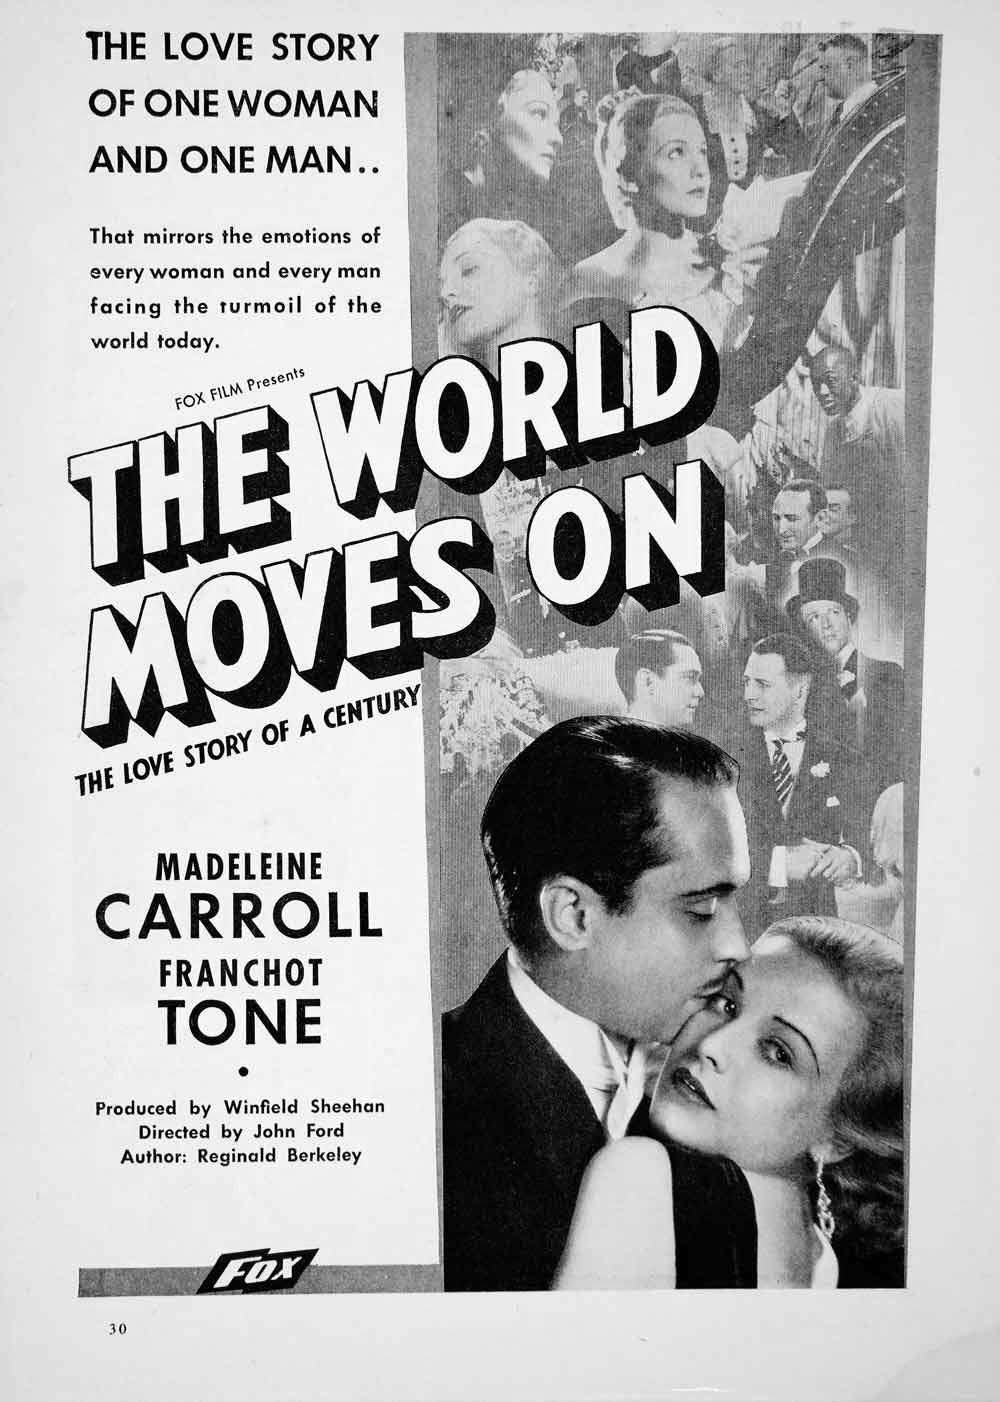 Image result for The World Moves On 1934 carroll and tone in bed